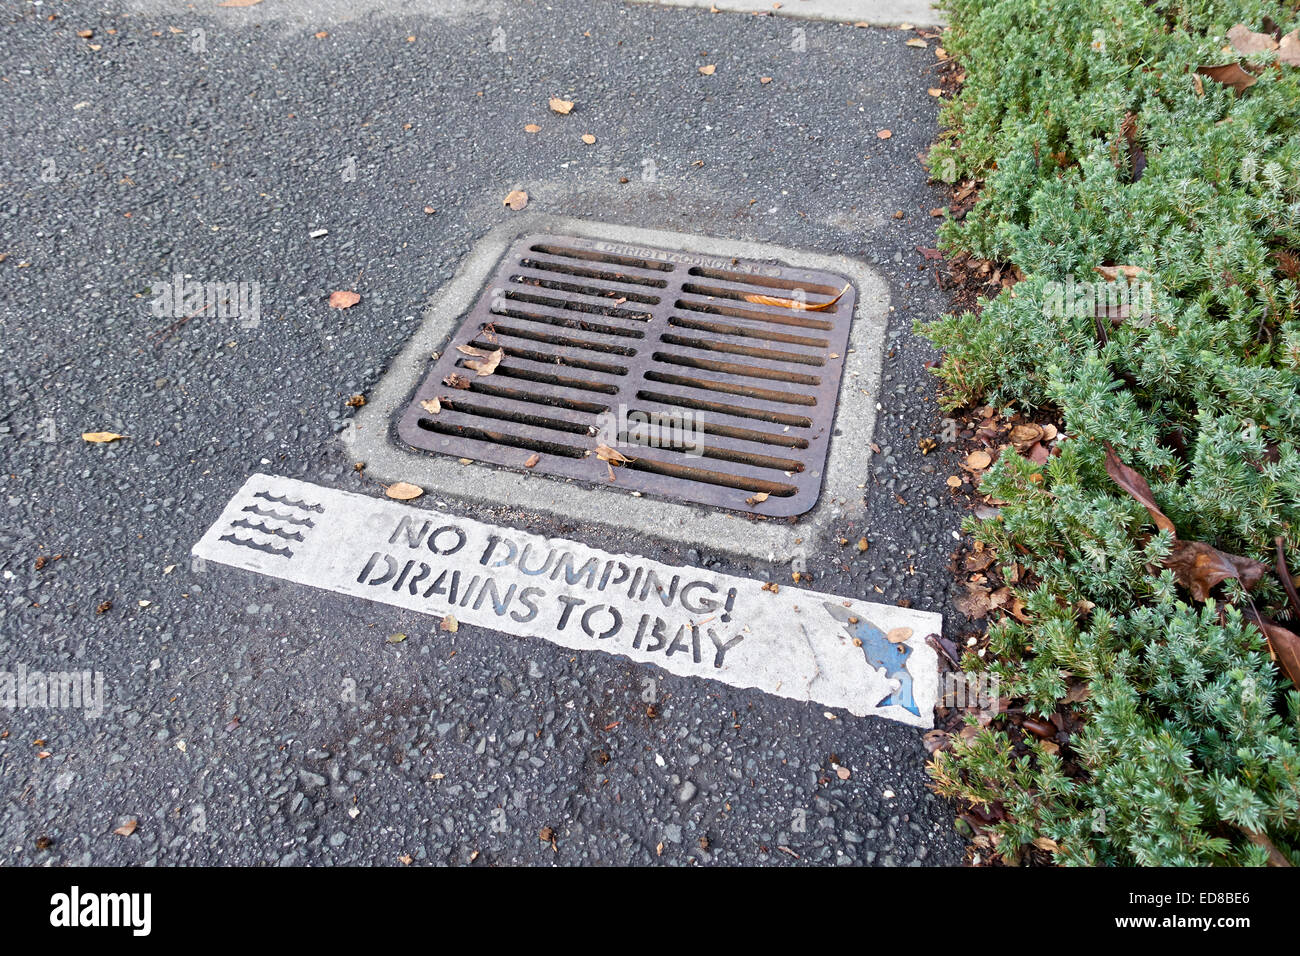 Storm drain marker, no dumping drains to bay, California, USA - Stock Image